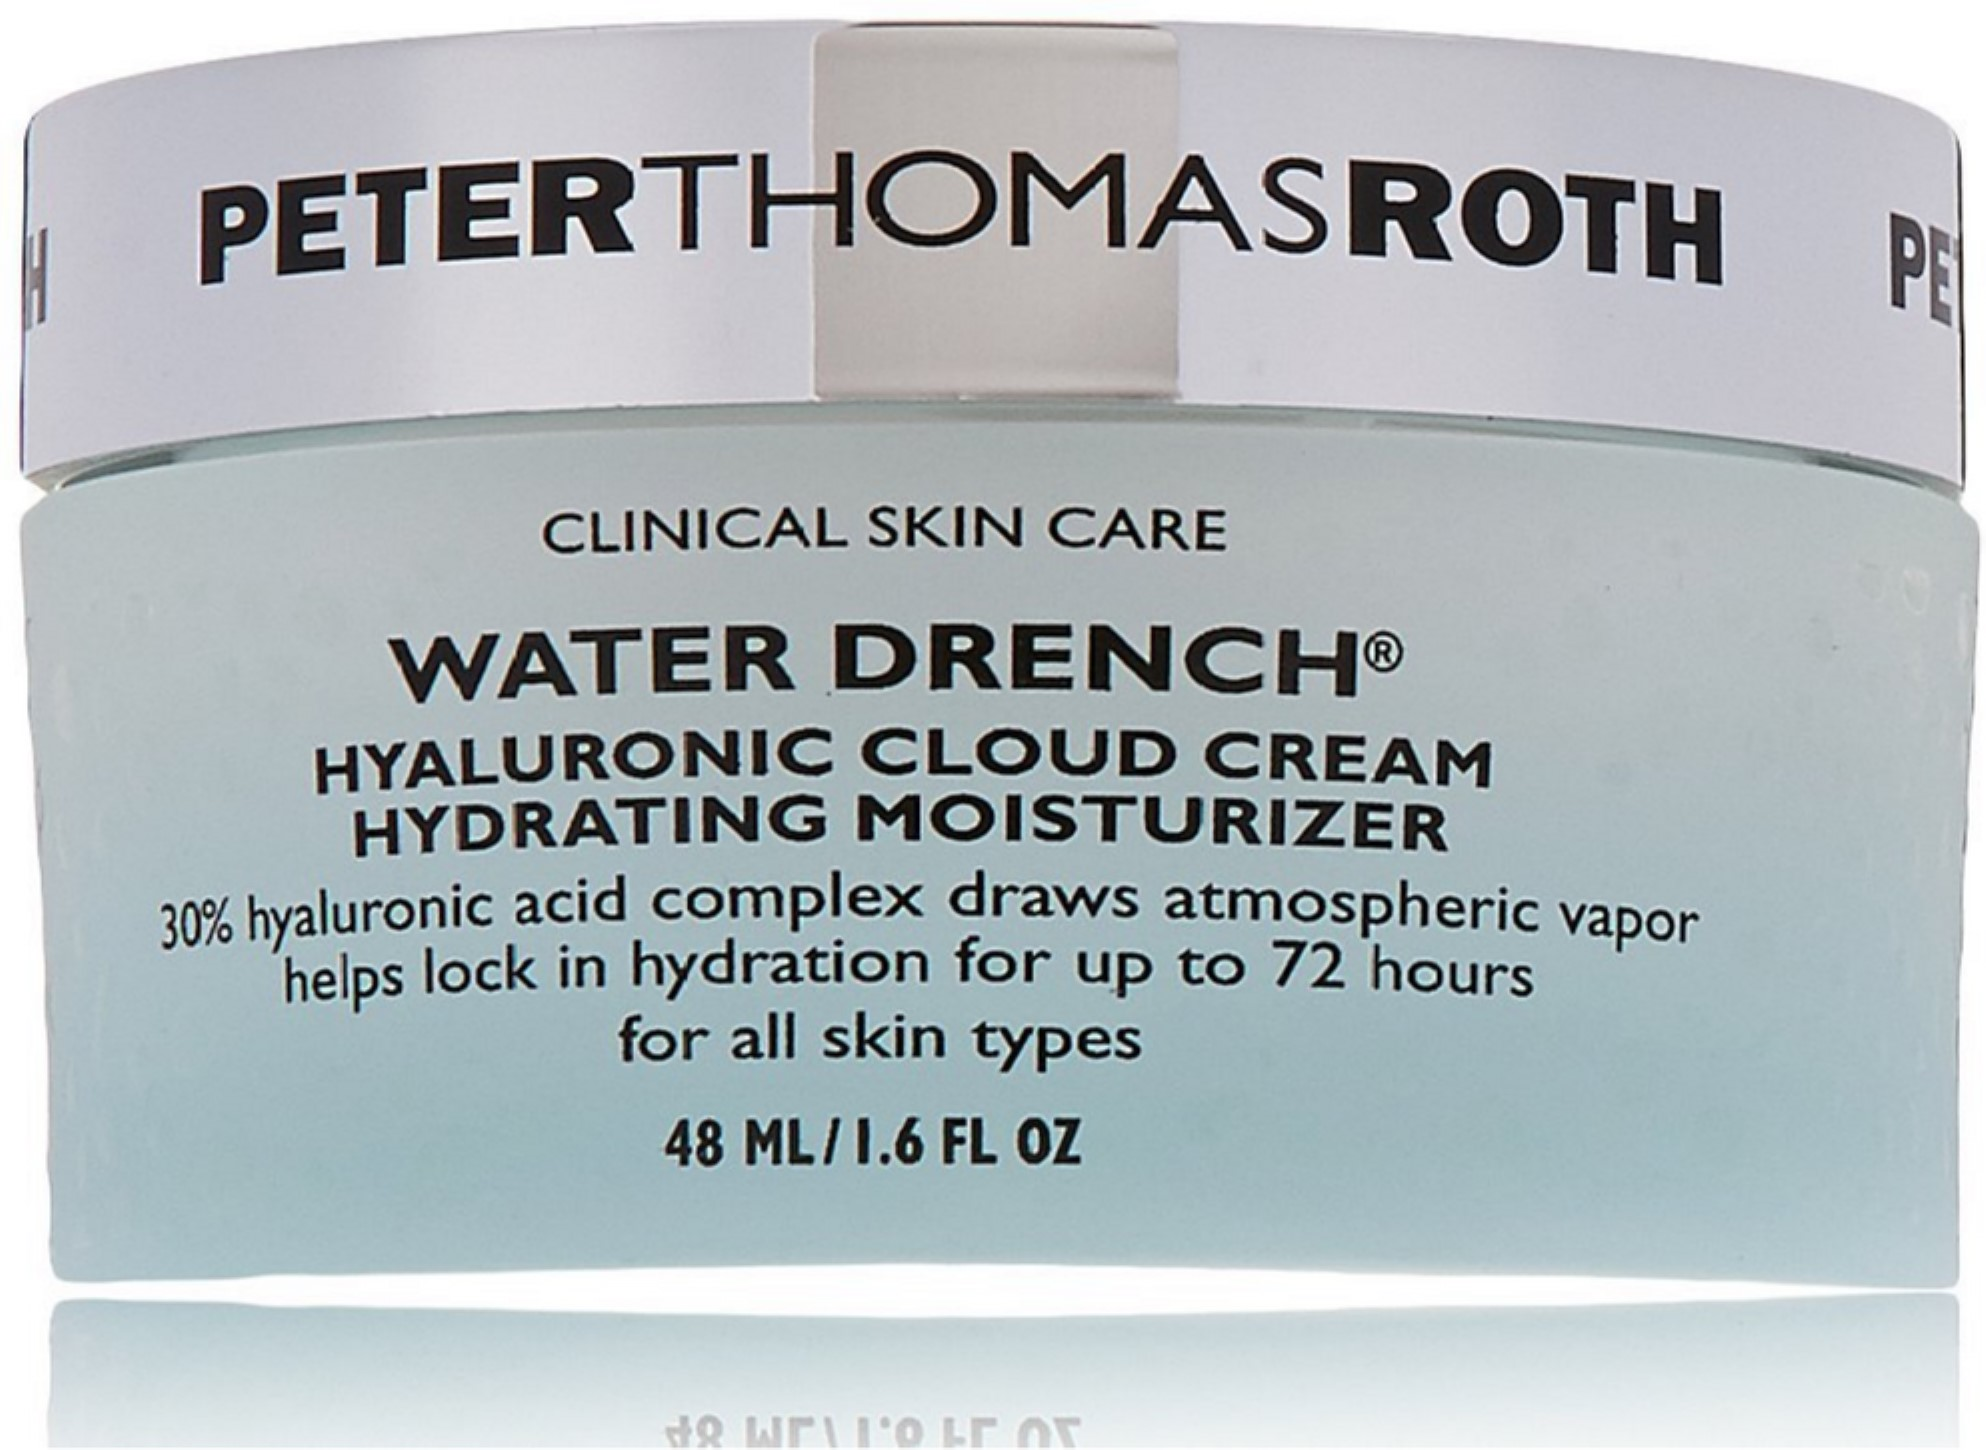 6 Pack - Peter Thomas Roth Water Drench Hyaluronic Cloud Cream 1.6 oz Elemis Pro-Intense Lift Effect (salon Product)